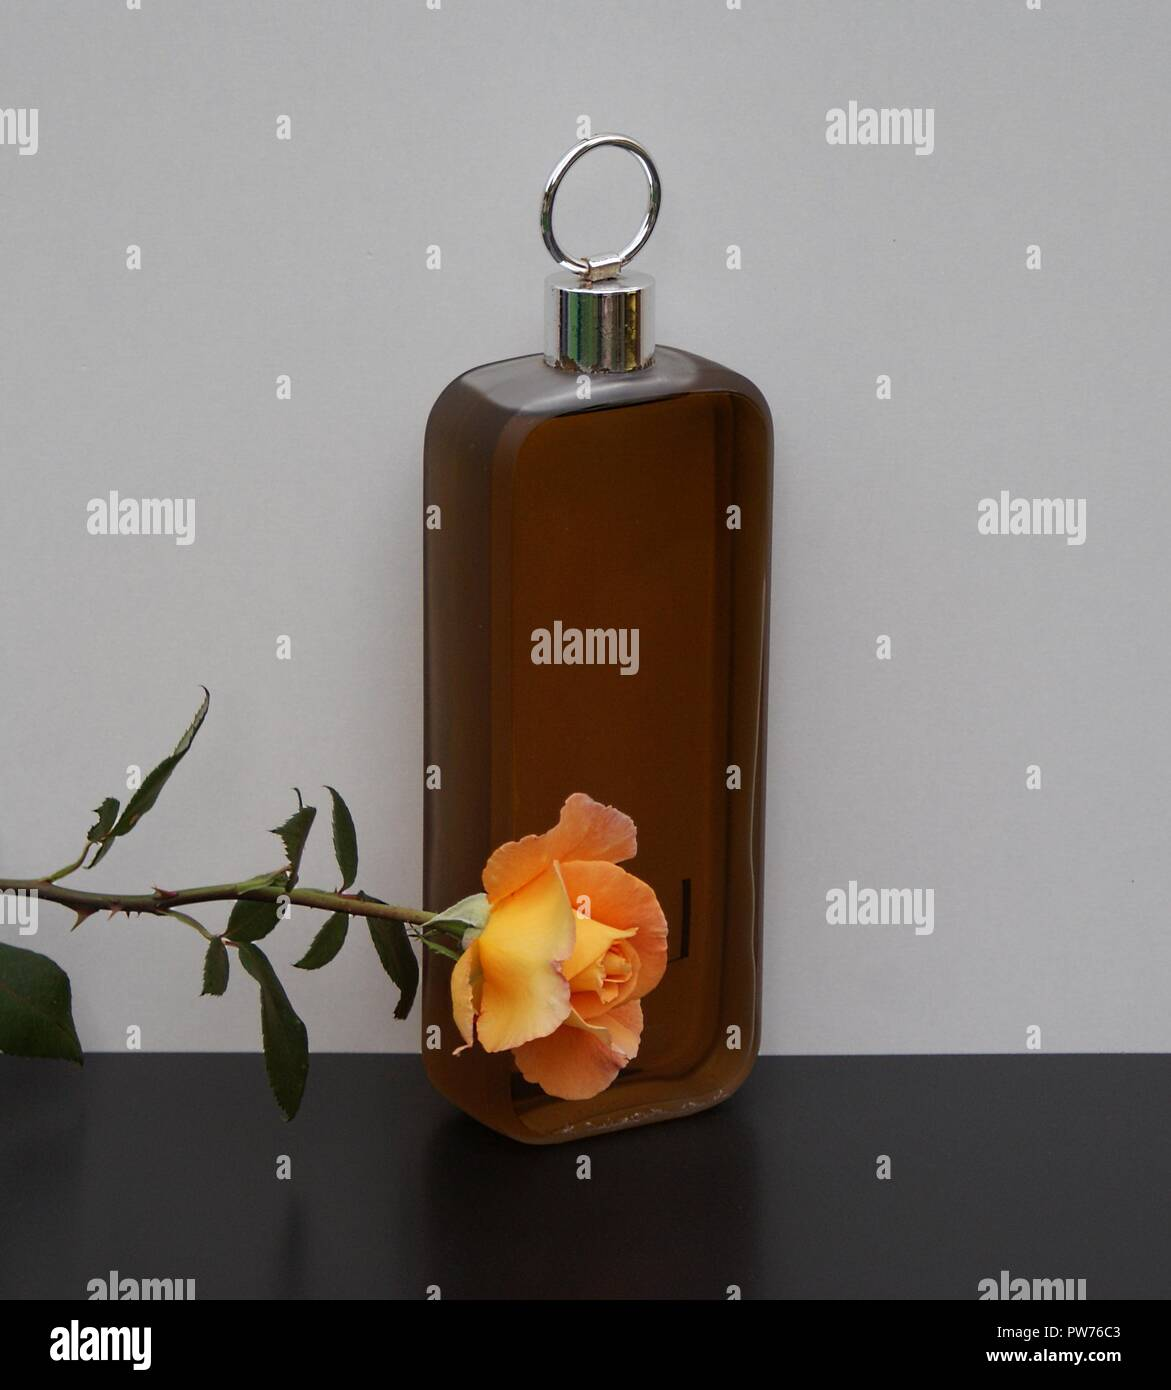 Lagerfeld, men's fragrance, large perfume bottle decorated with an English rose - Stock Image